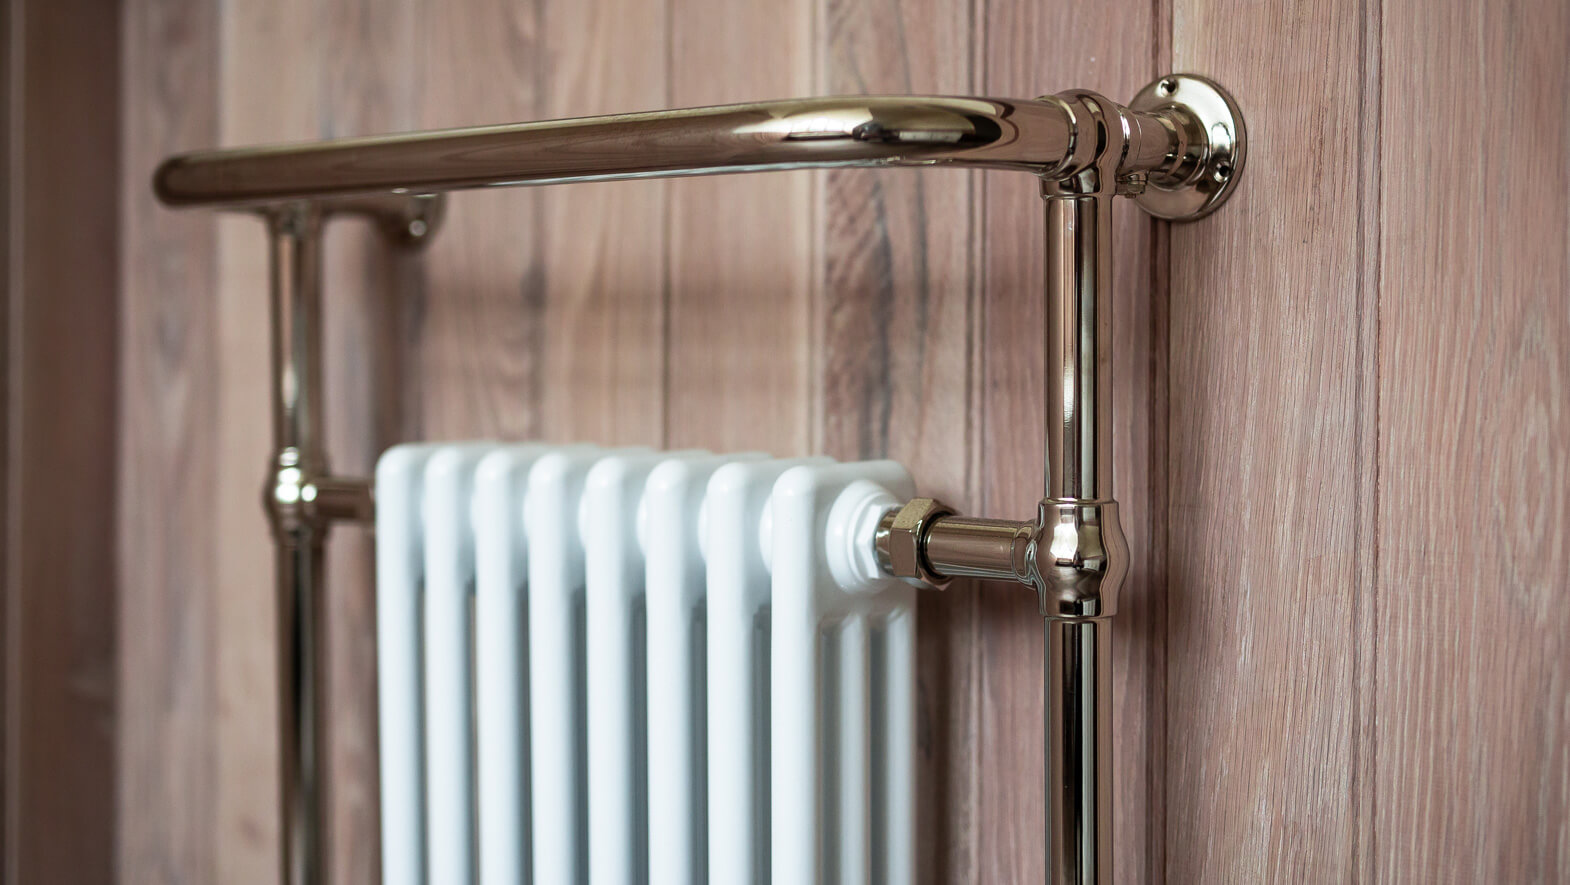 Beechwood Road - Bathroom Radiator